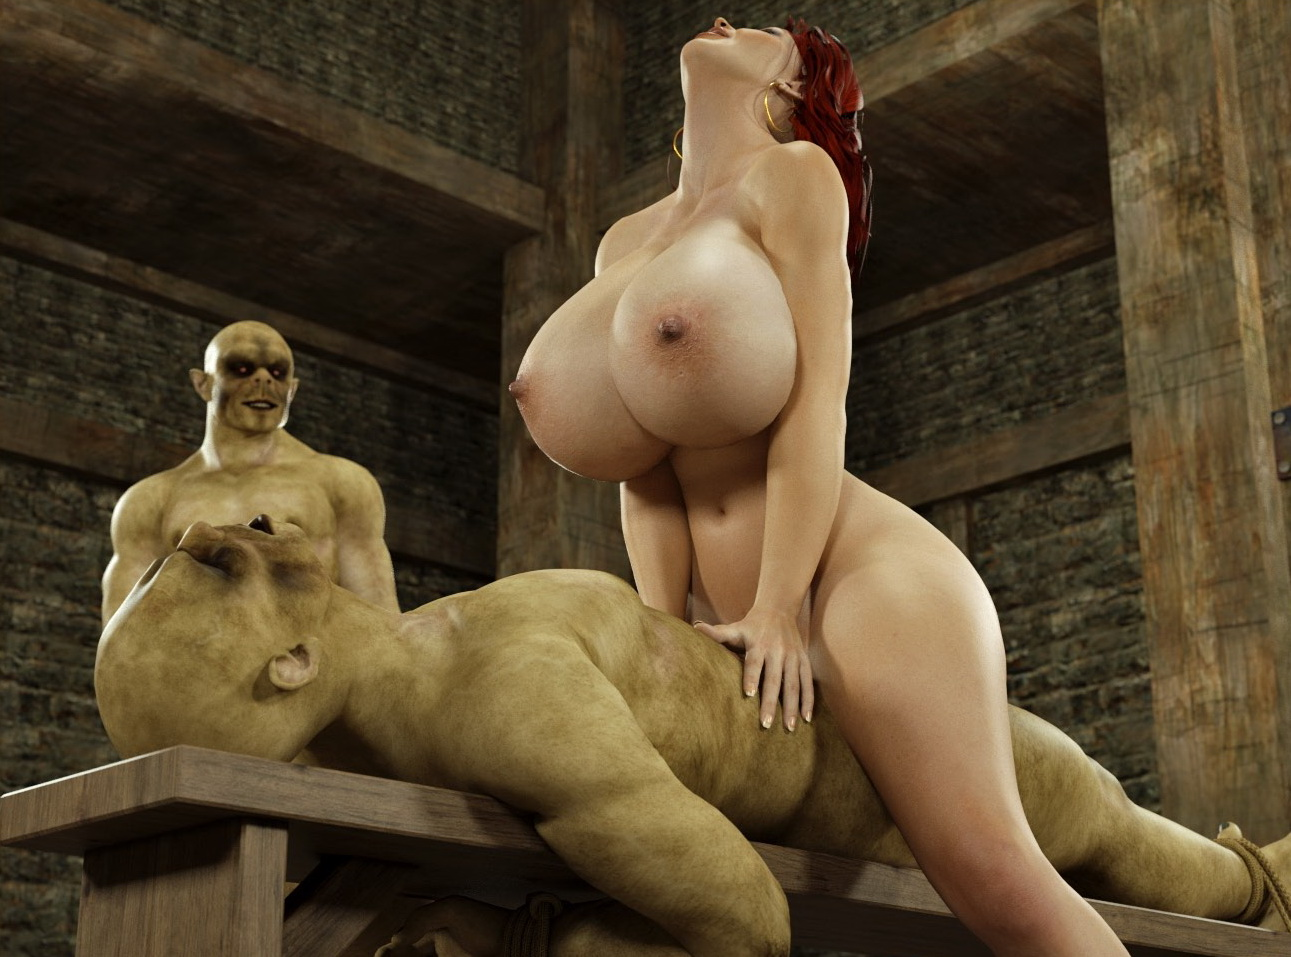 Pic 3d monsters sex fast downloading picters  erotic tubes